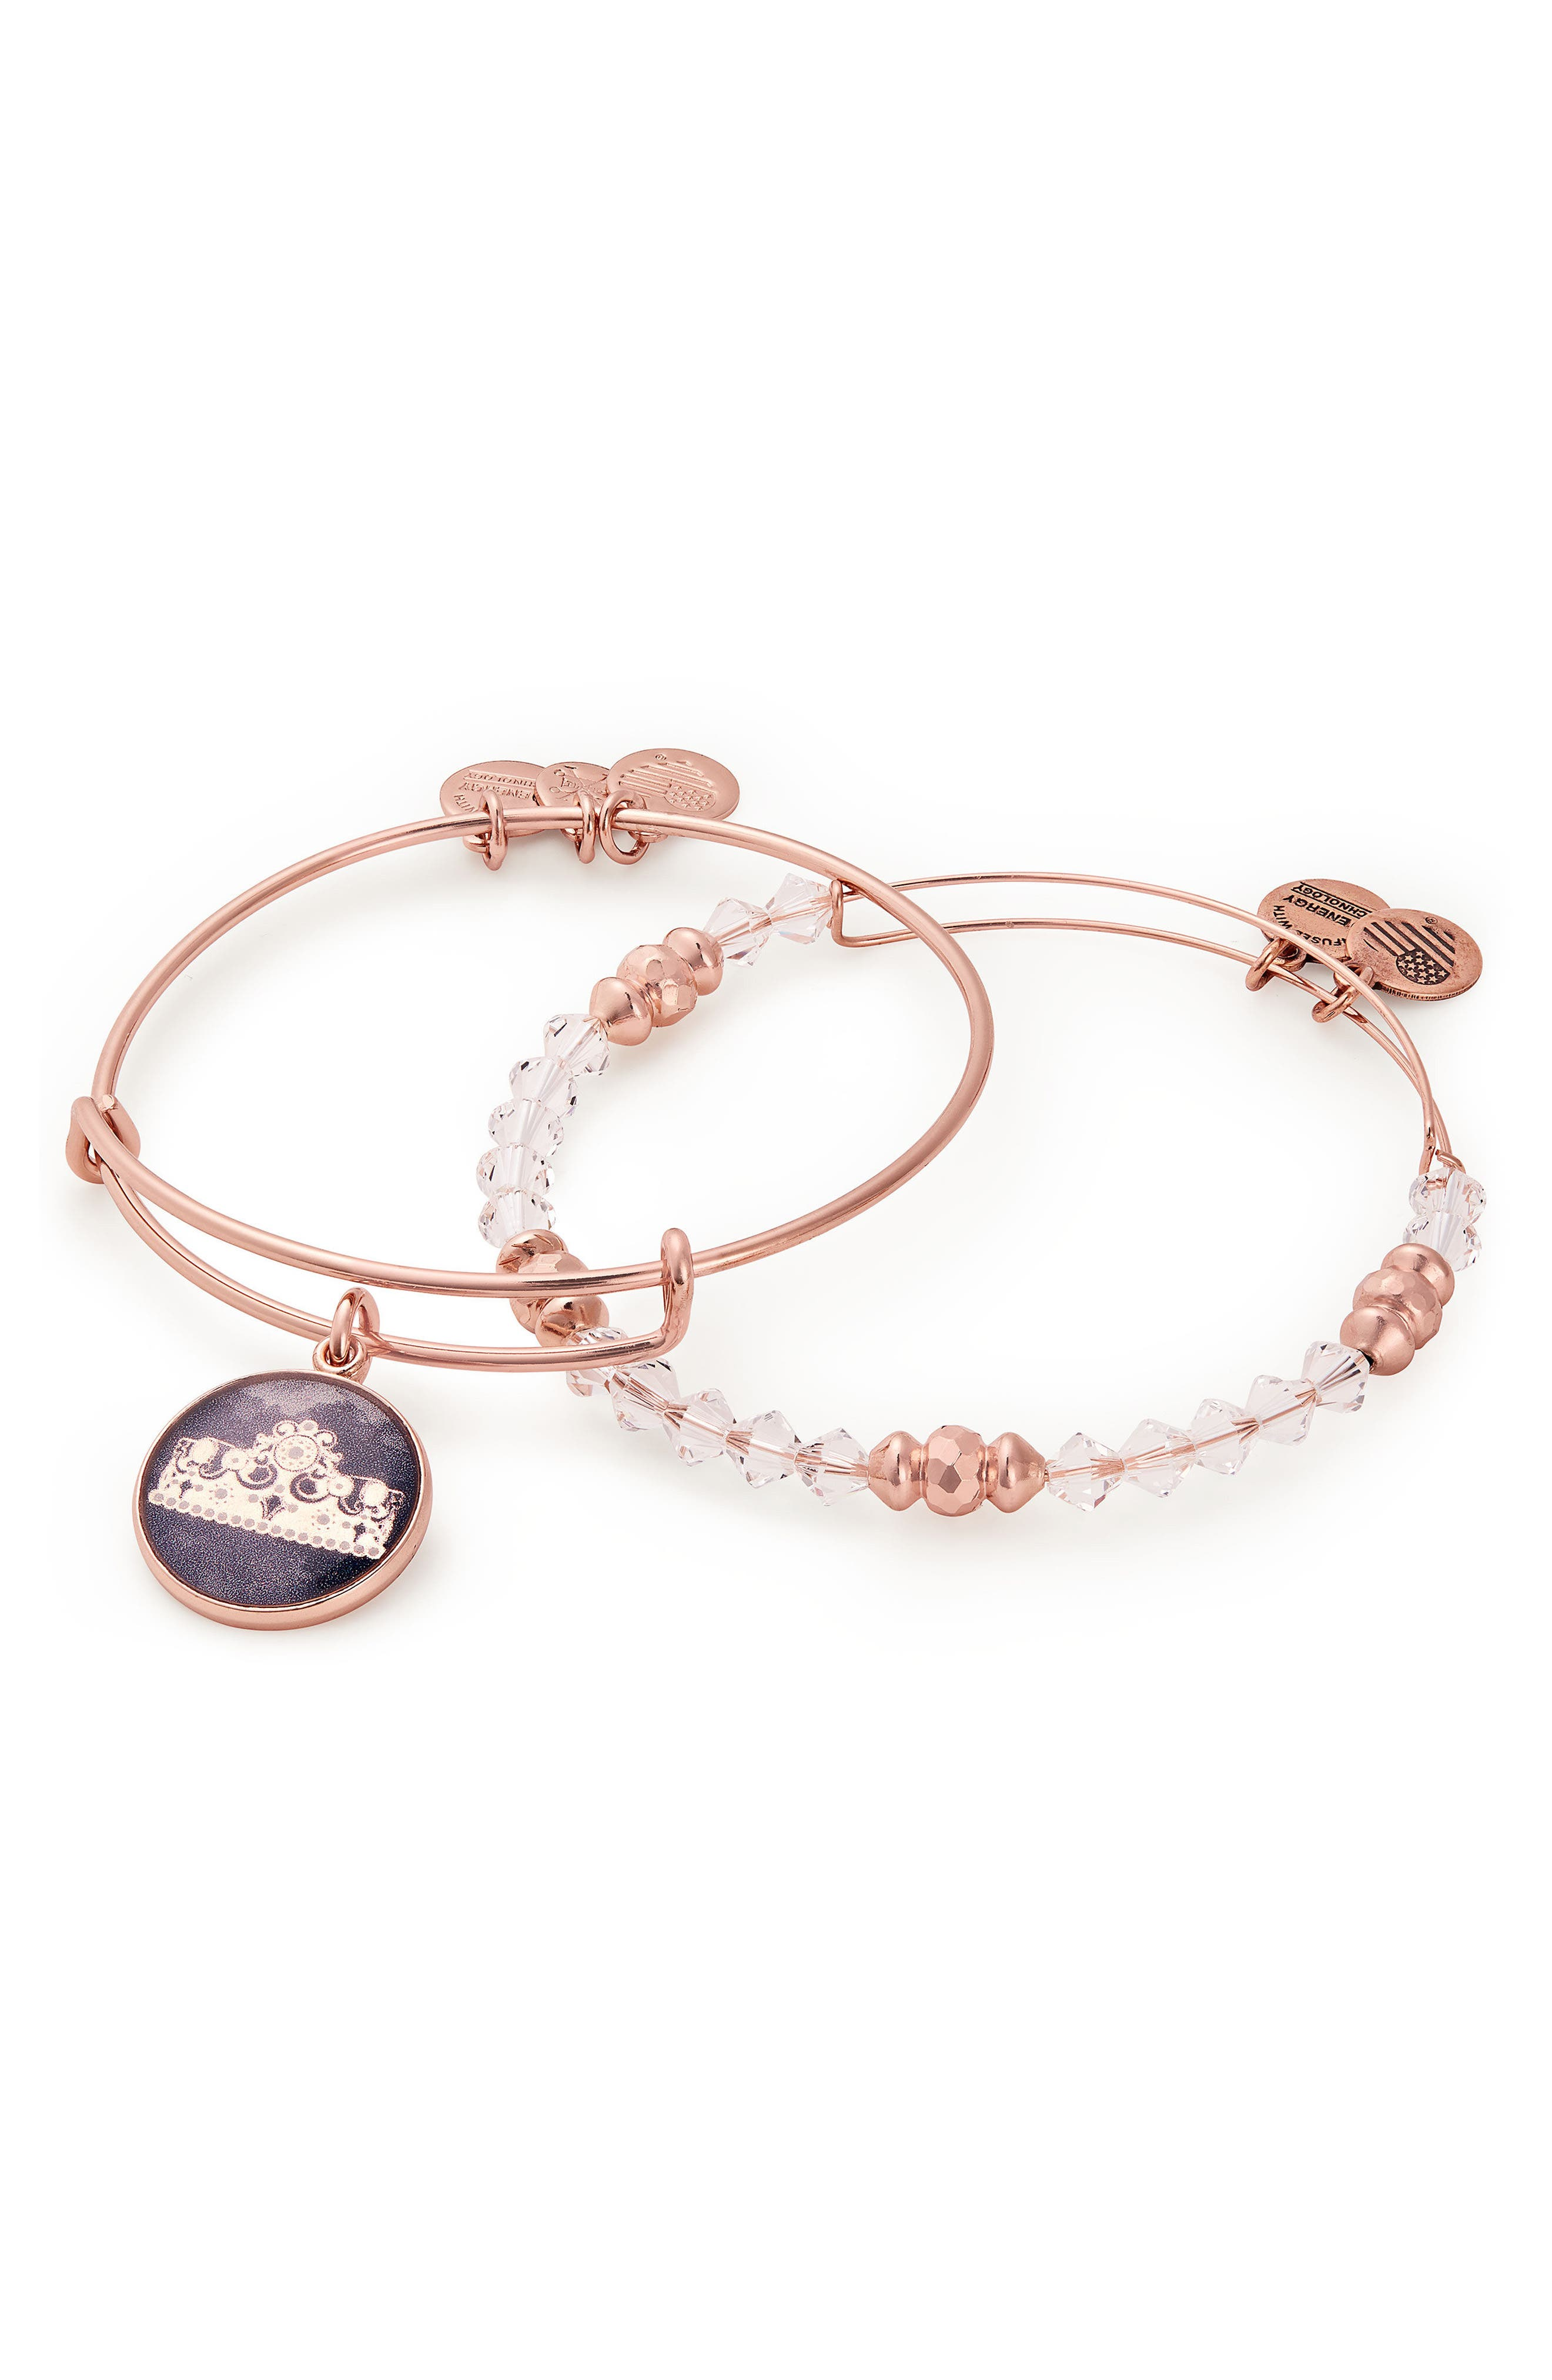 Queen's Crown Set of 2 Adjustable Wire Bangles,                         Main,                         color, Rose Gold